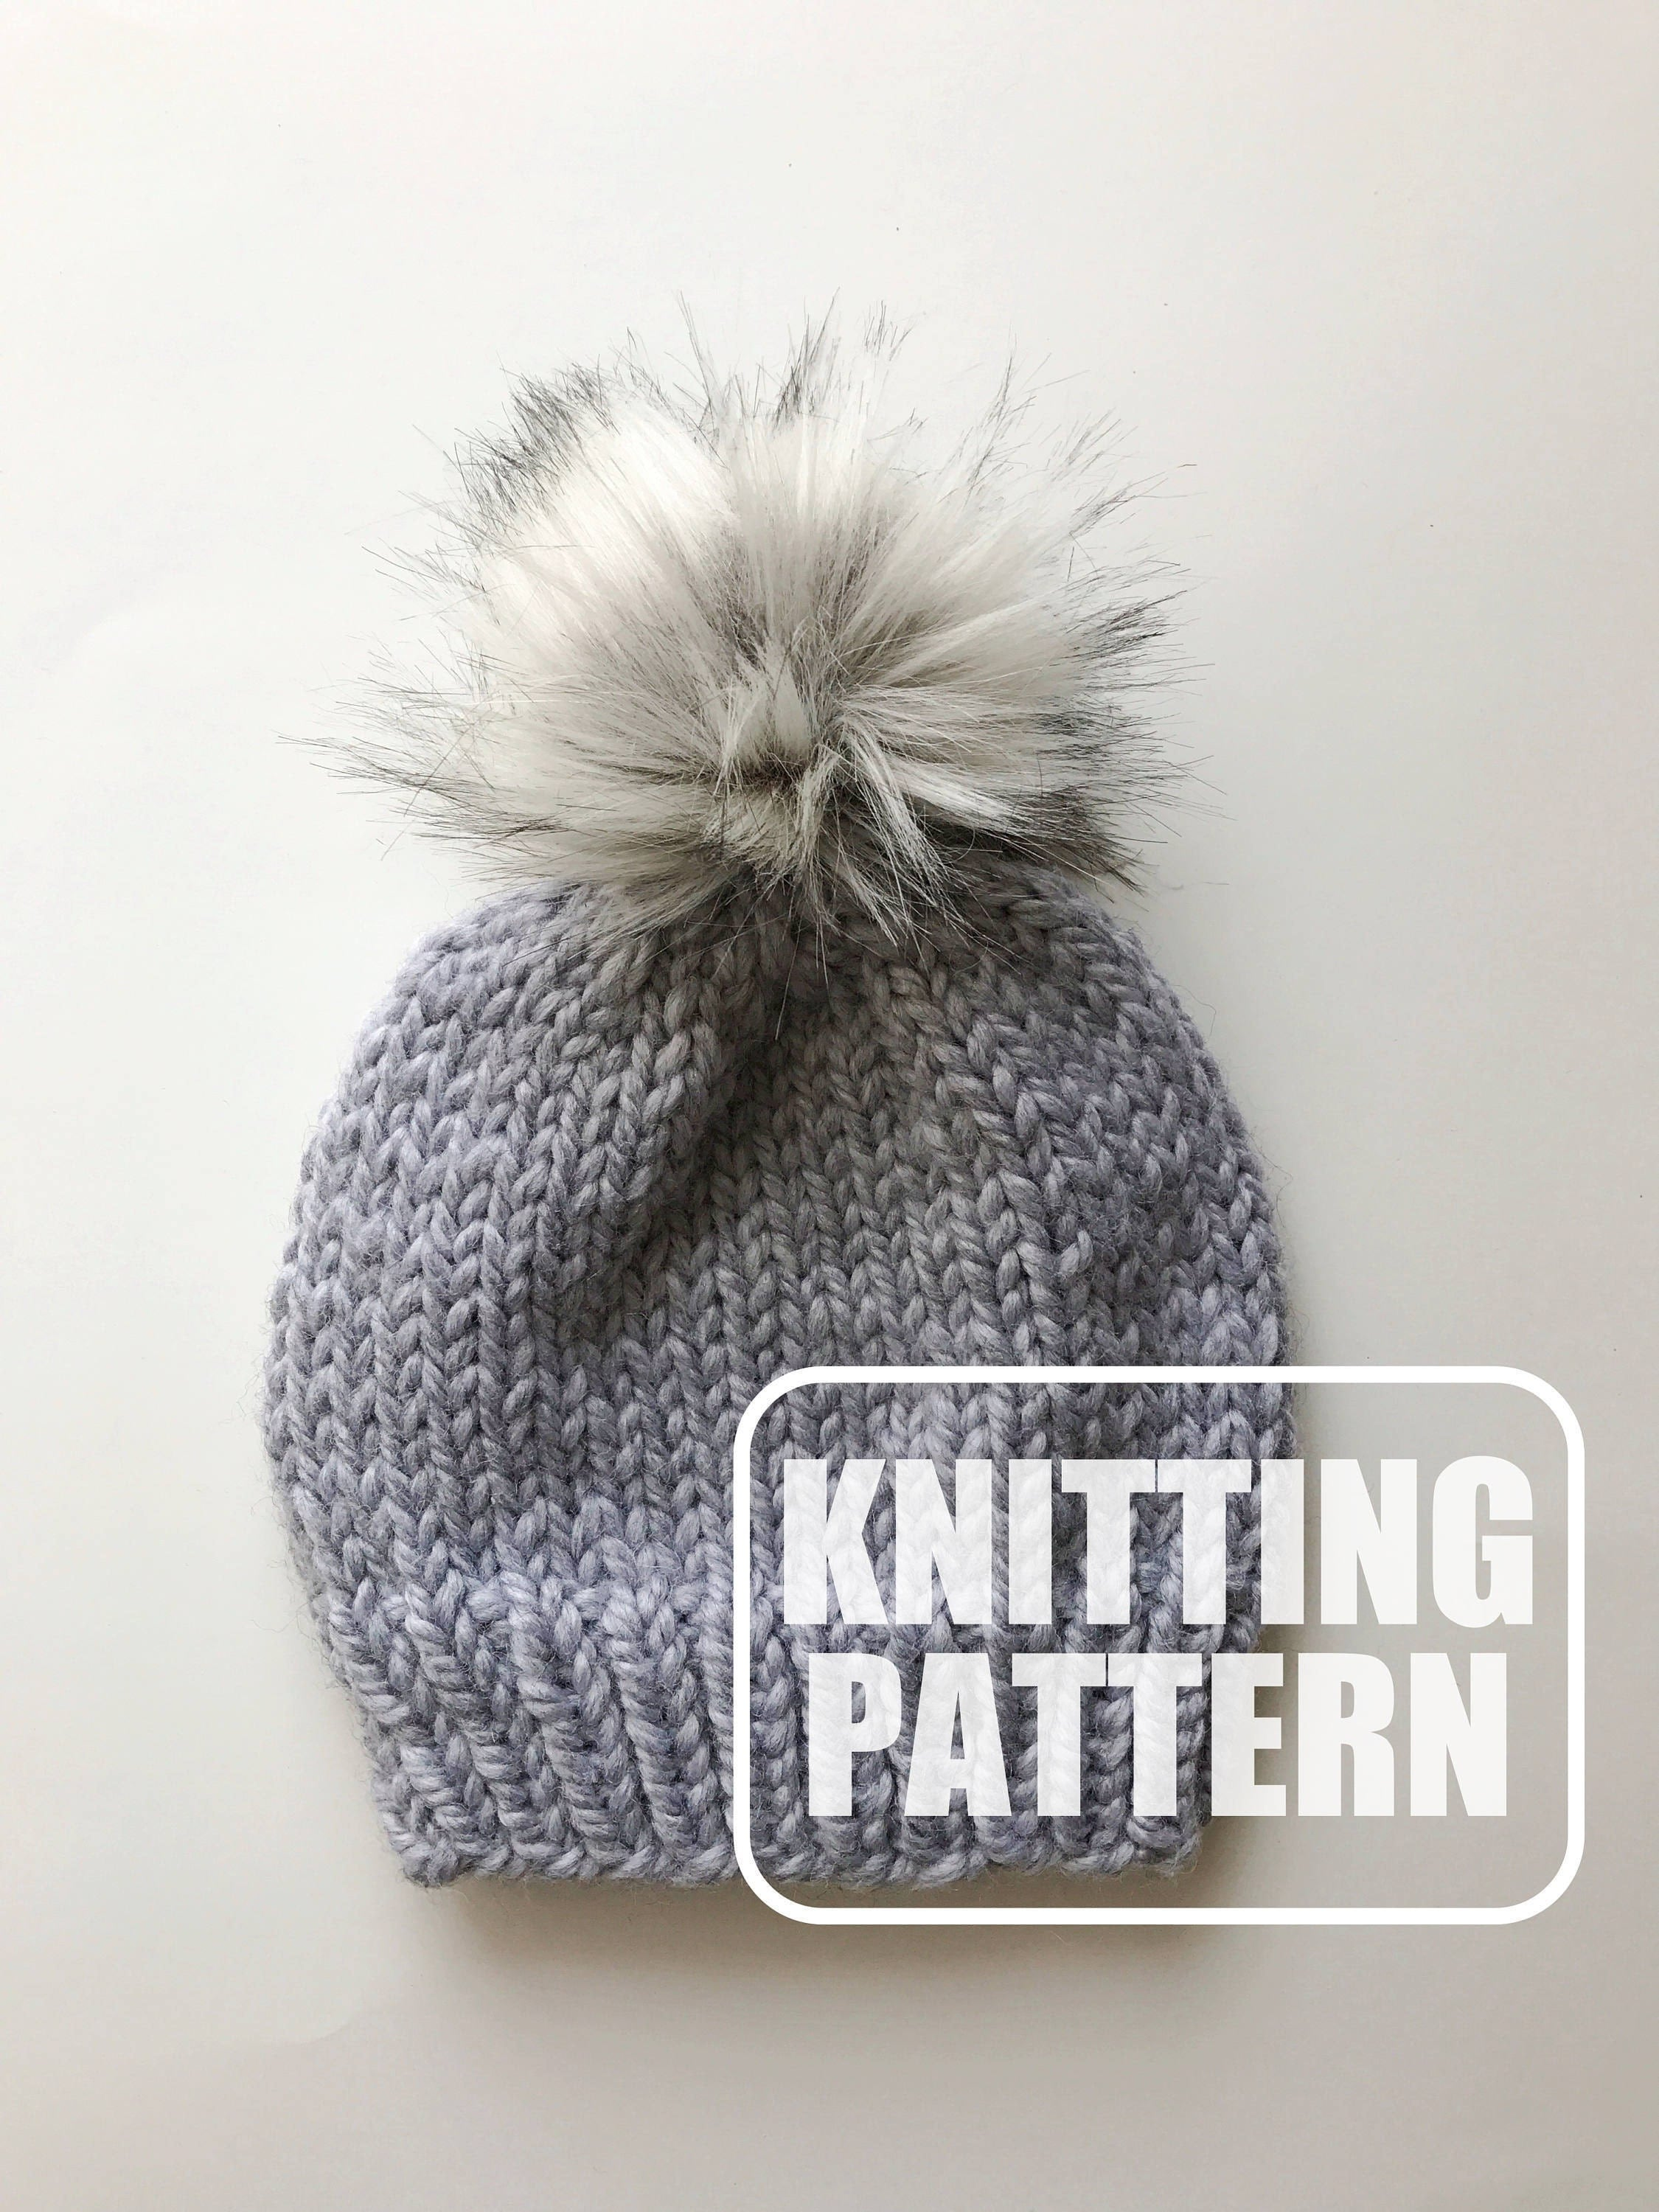 Knitting pattern knitting pattern knit hat pattern hat zoom bankloansurffo Choice Image